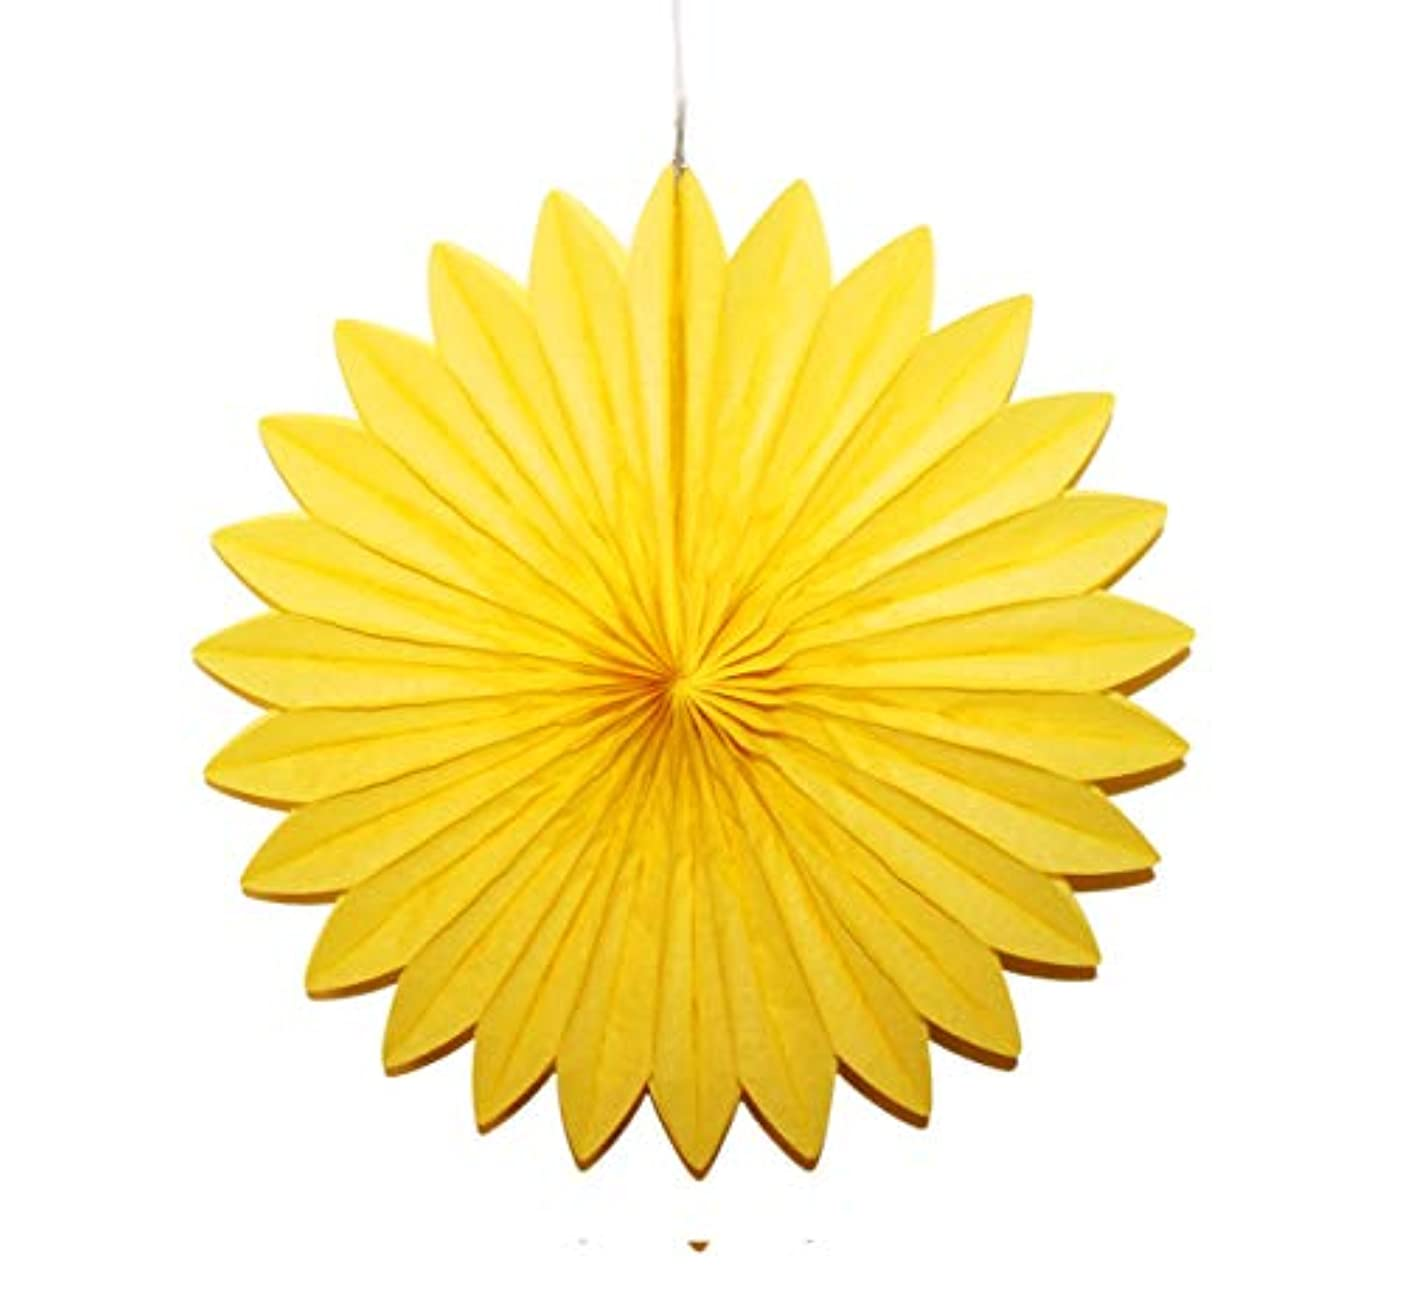 LG-Free 5pcs Party Paper Fan Hanging Paper Fans Decoration Tissue Paper Fans Honeycomb Wall Backdrop Paper Pom Poms Ceiling Wedding Birthday Party Baby Shower (Style1-16'', Yellow)